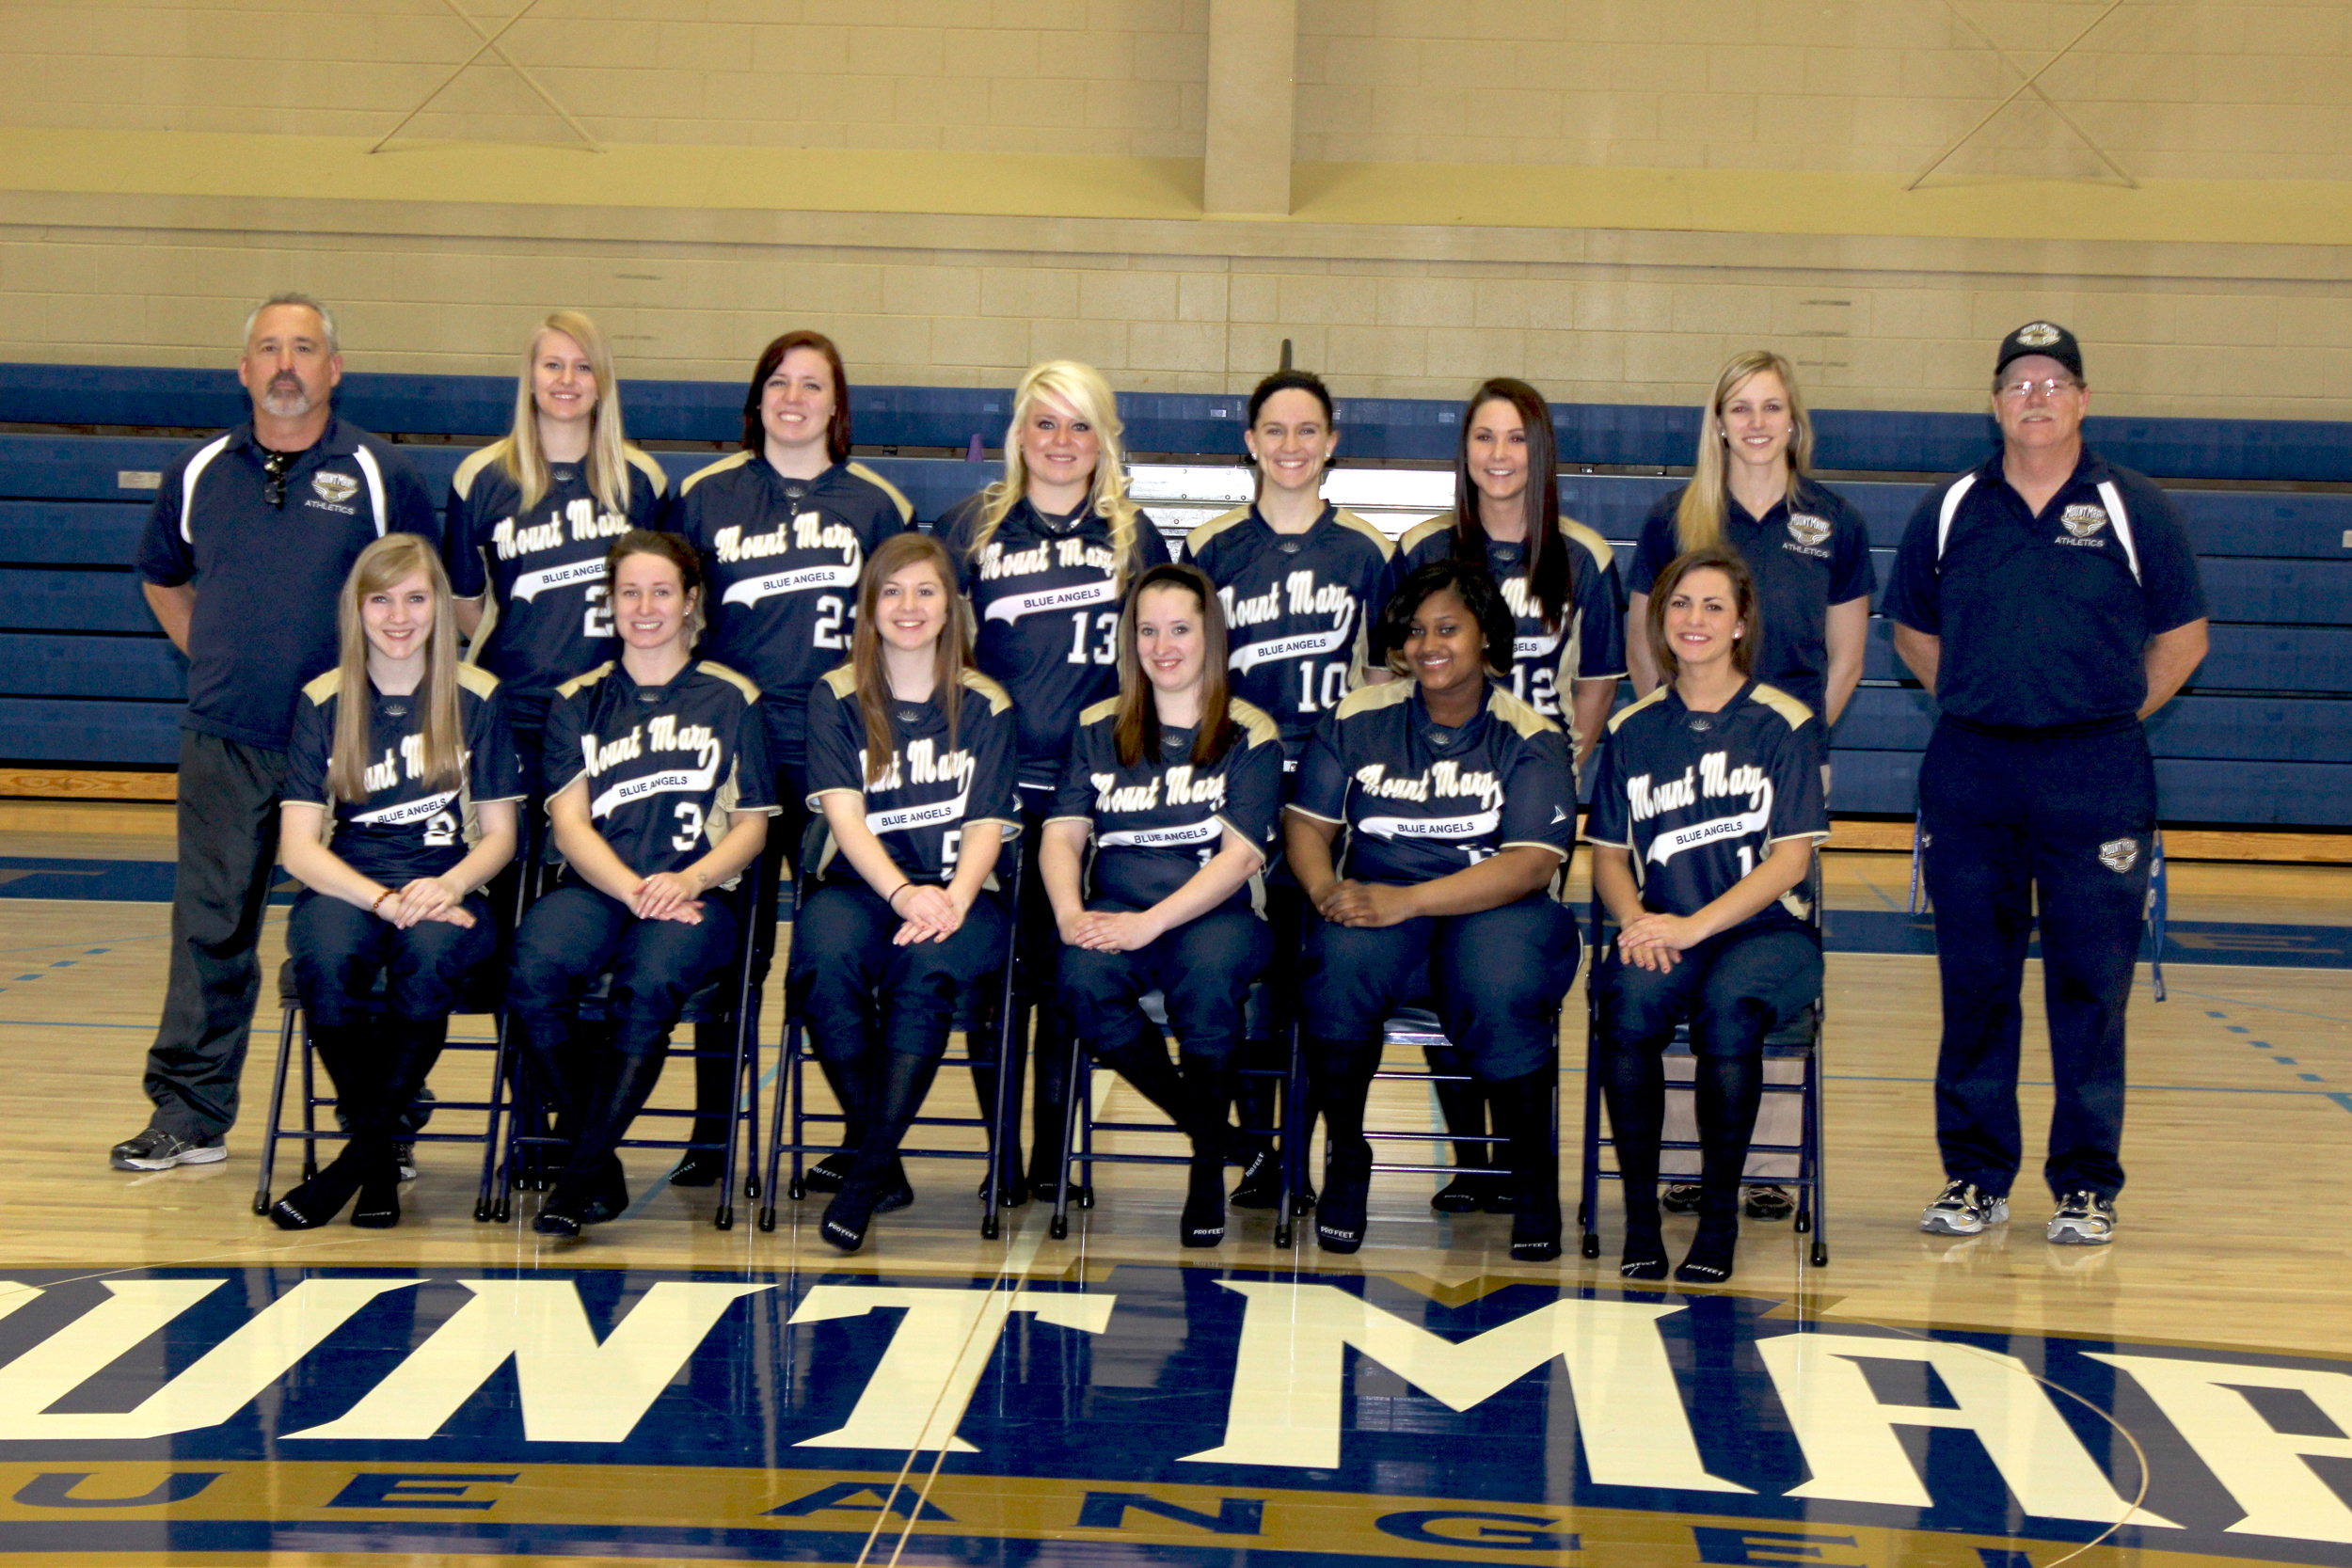 mmu-3-softball-team-edited-2014